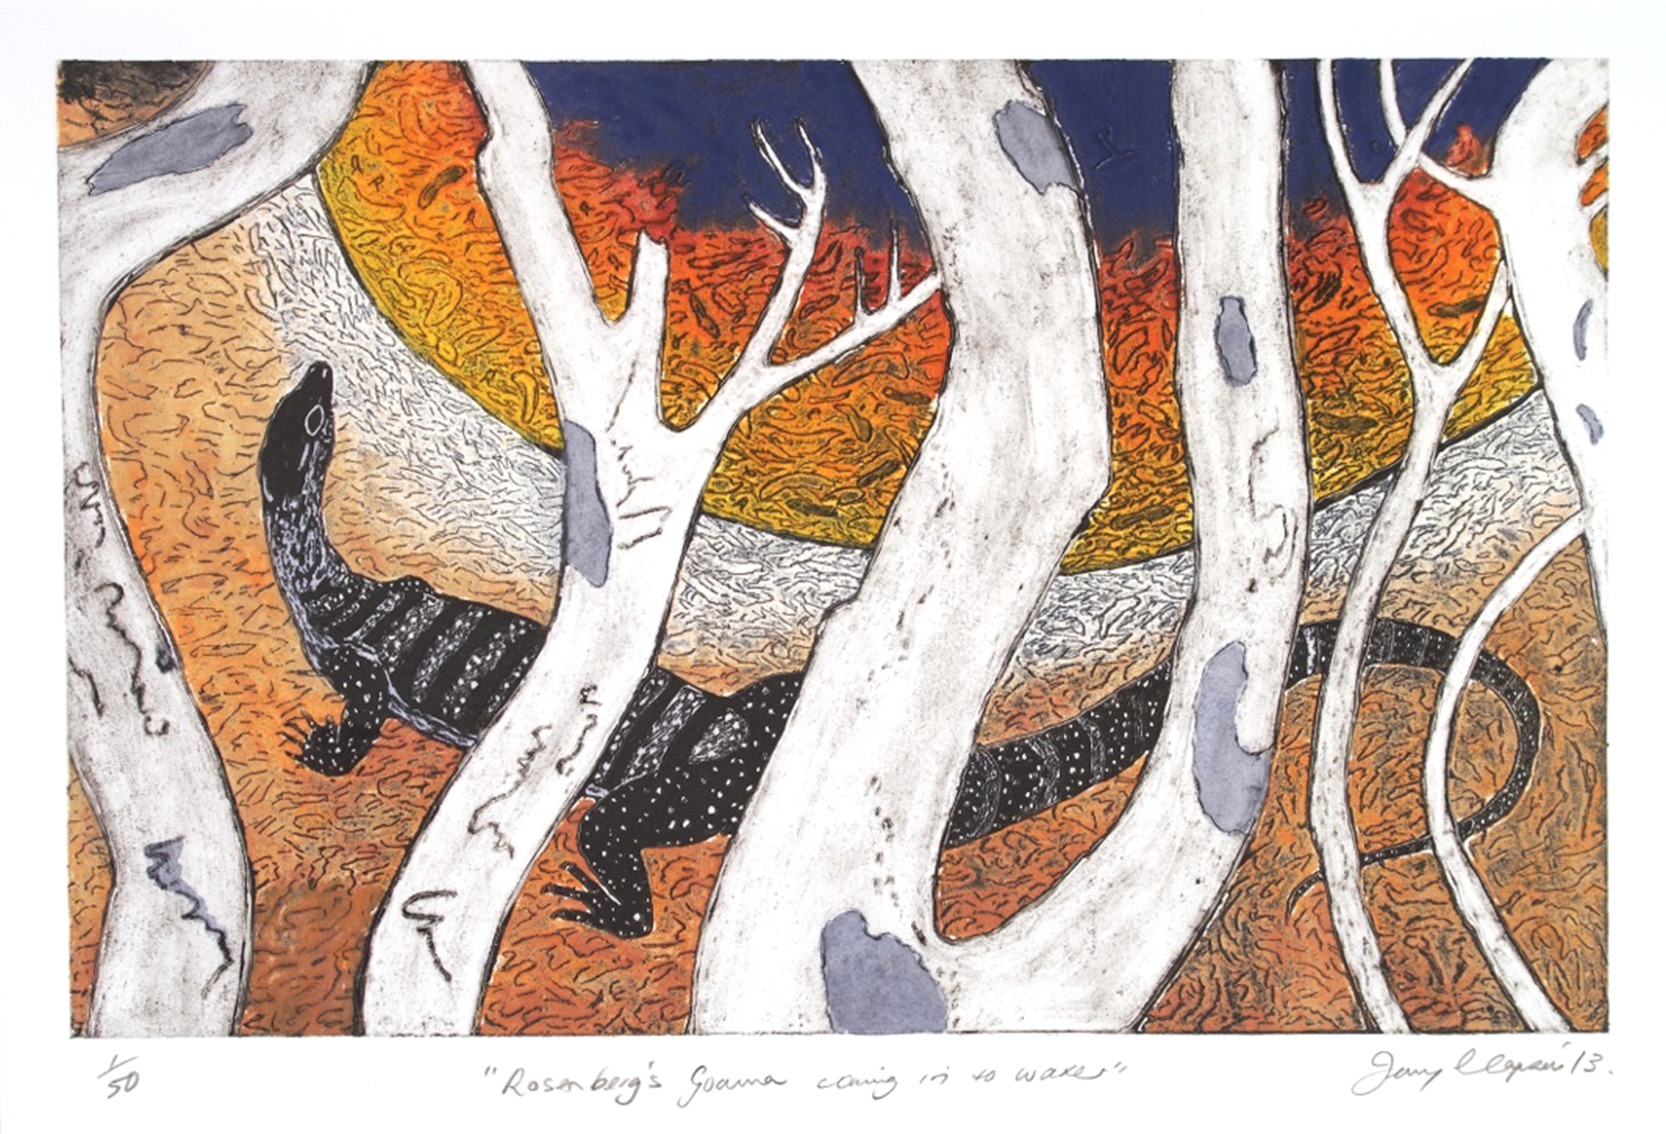 Solar plate etching by Kangaroo Island artist Jenny Clapson whose work is exhibited in the National Gallery of Australia - Rosenberg's Goanna coming into water.